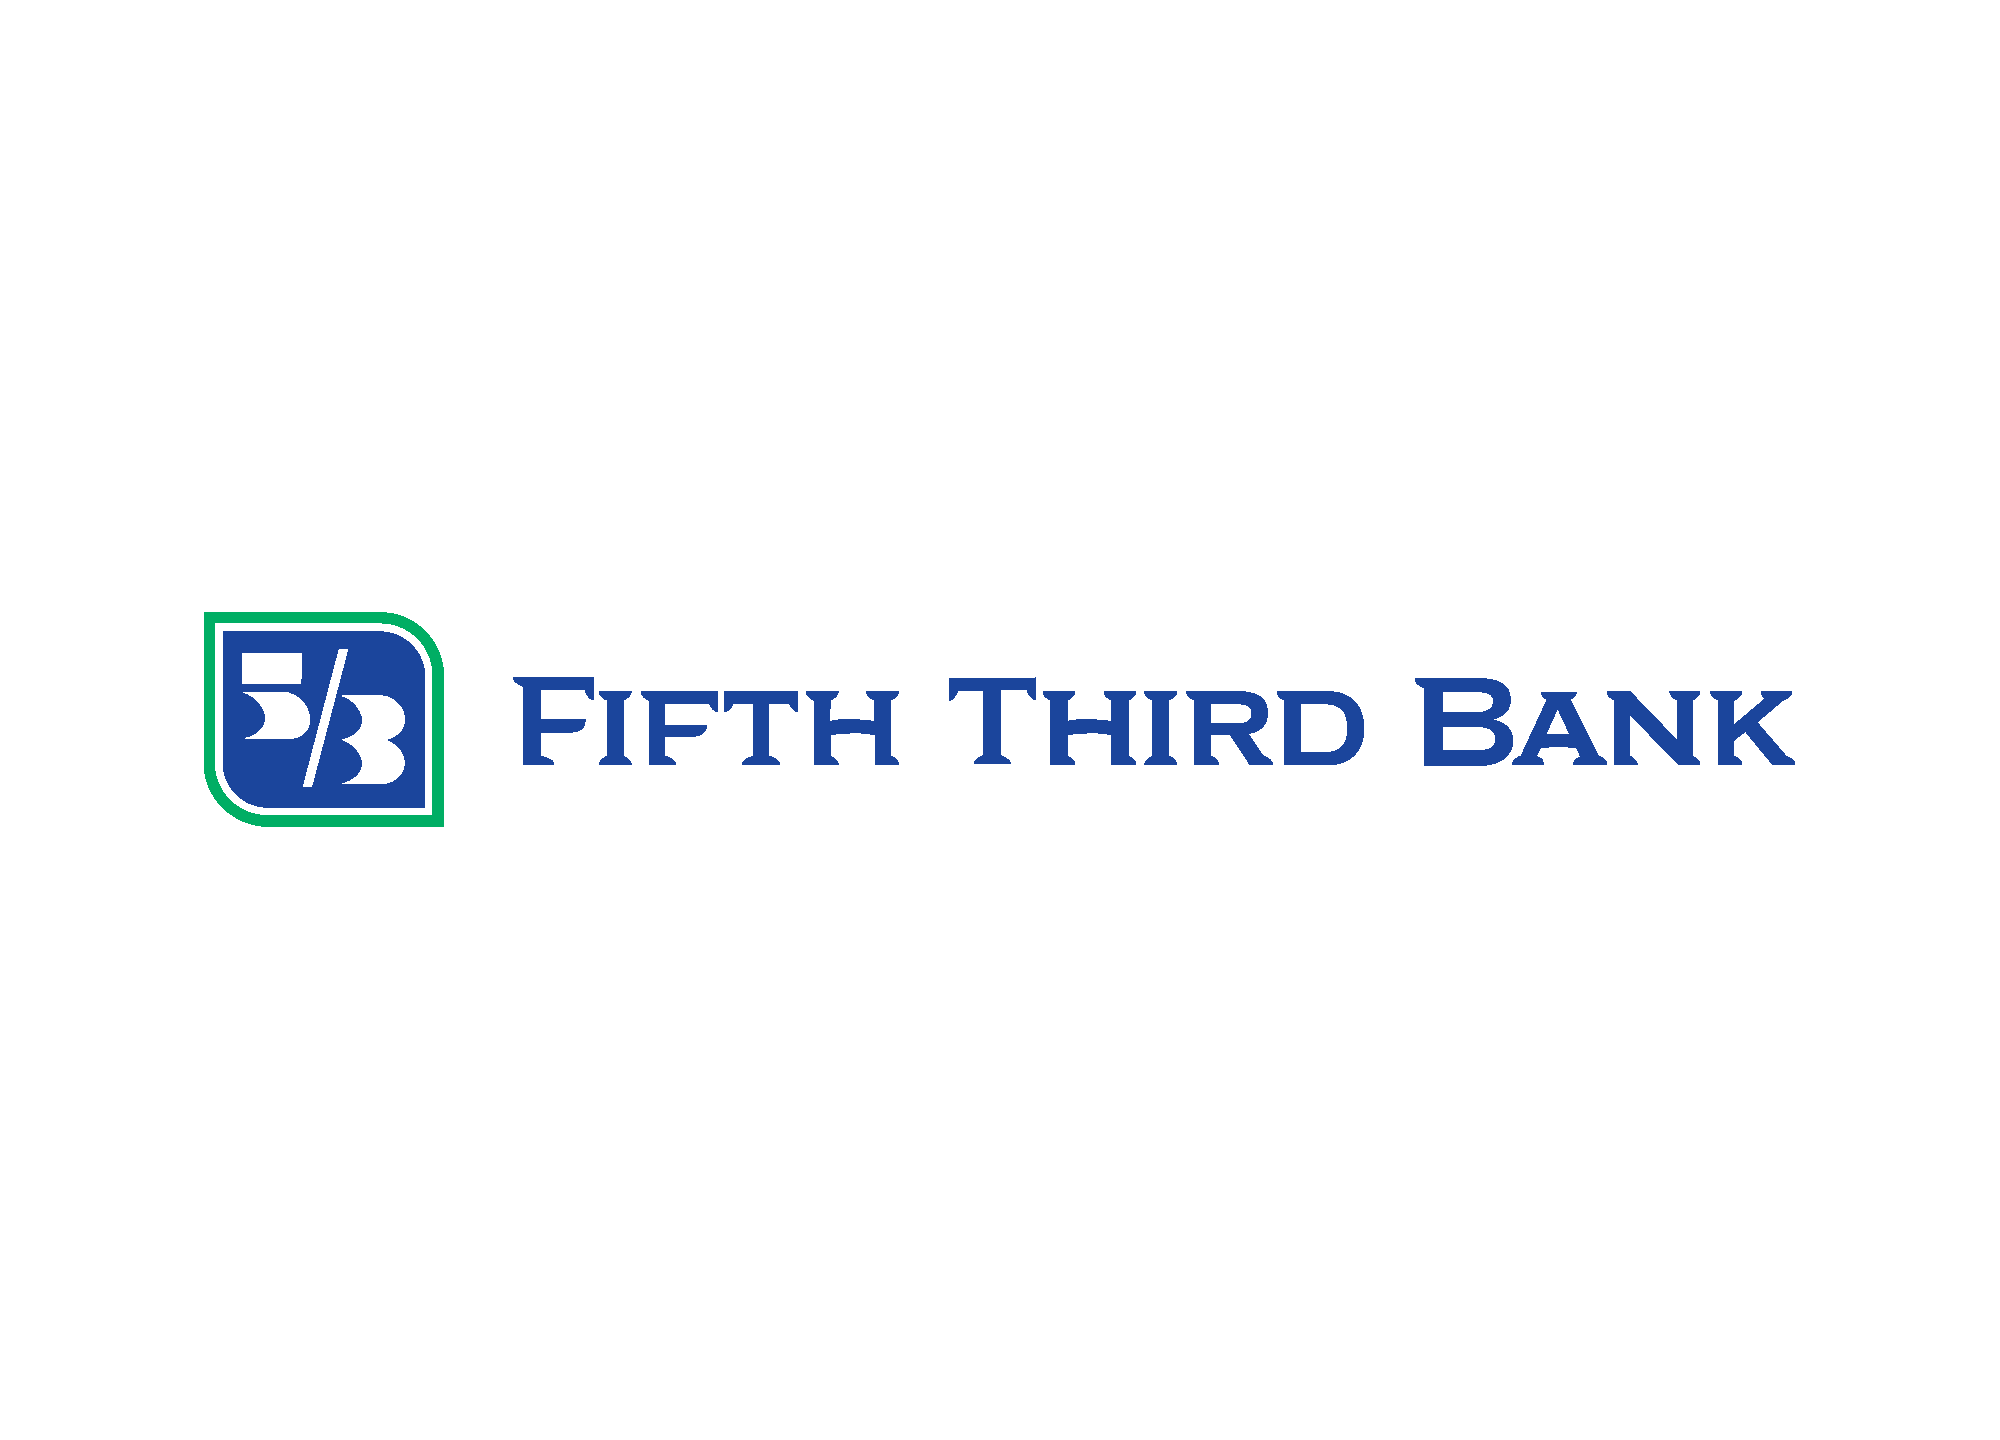 Fifth Third Bank announces $18 minimum wage.